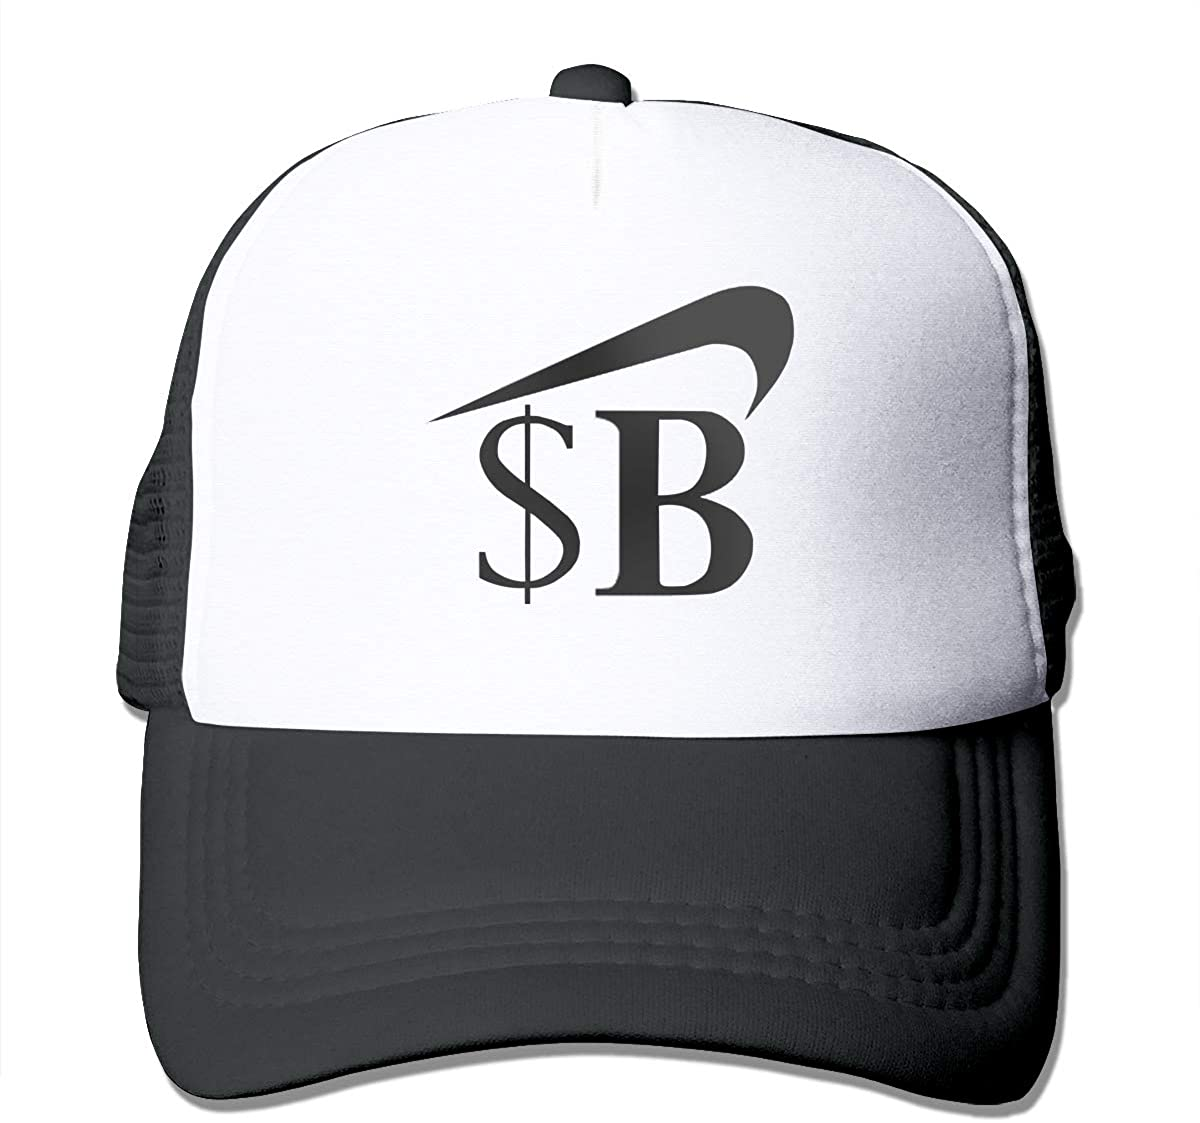 Smooffly Women's Men's Baseball Cap Suicide Boys Street Rapper Hat Adjustable Snapback Unisex